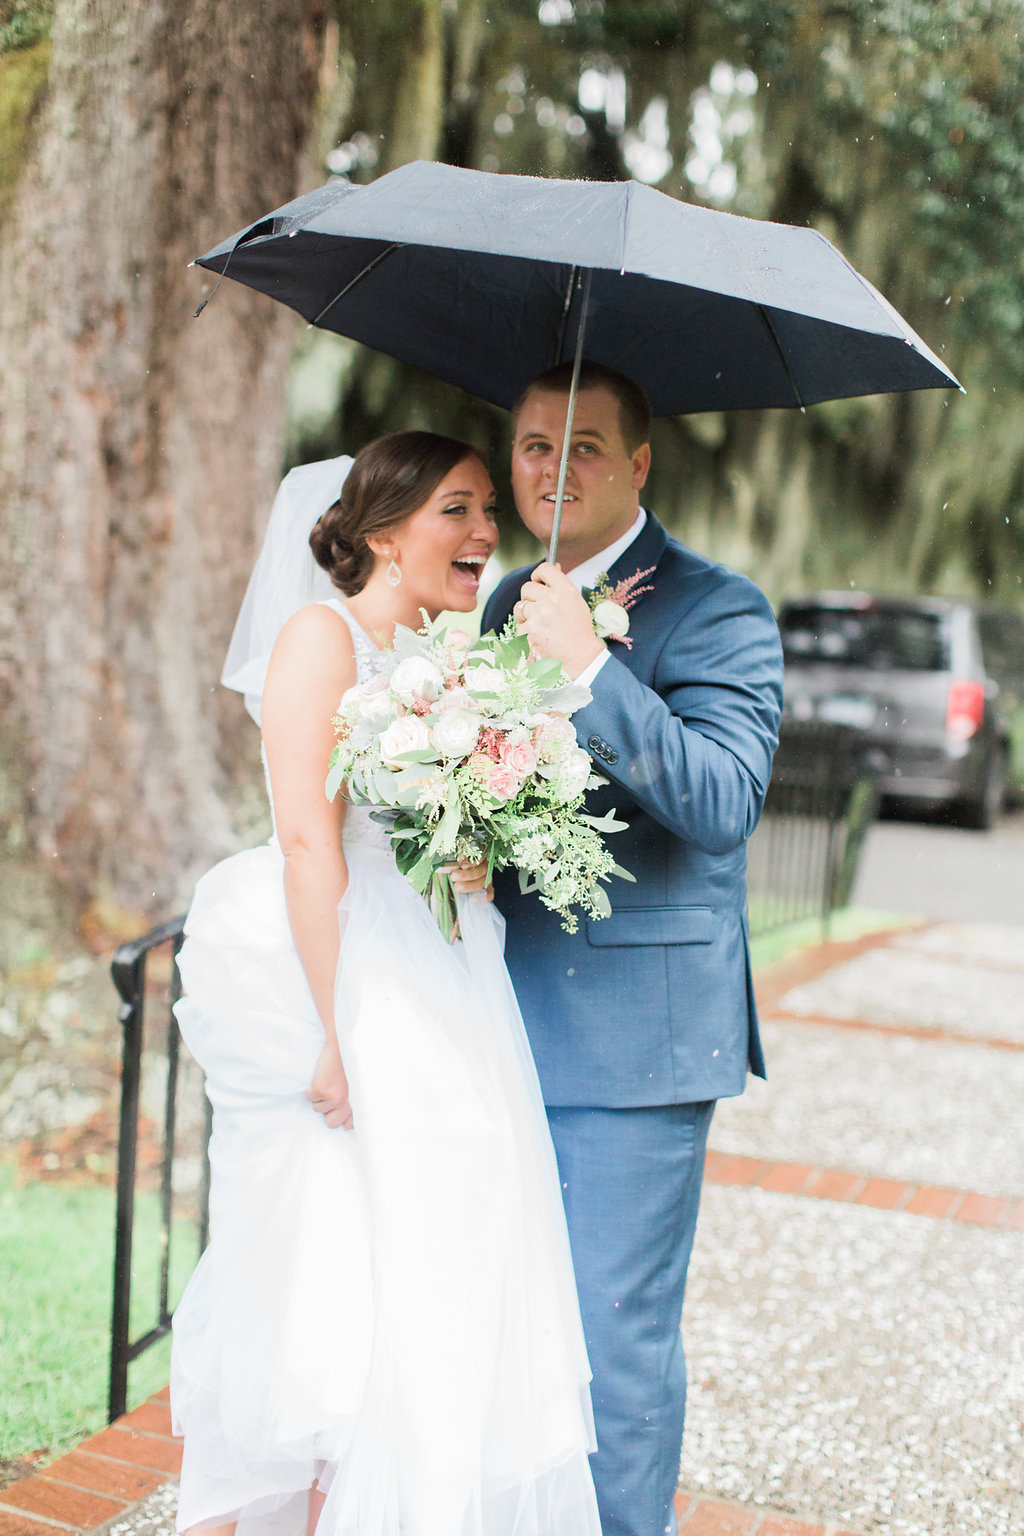 the-happy-bloom-photography-ivory-and-beau-wedding-planning-ivory-and-beau-bridal-boutique-whitfield-chapel-wedding-10-downing-wedding-savannah-wedding-historic-savannah-wedding-savannah-wedding-planner-savannah-weddings-a-to-zinnias-35.jpg